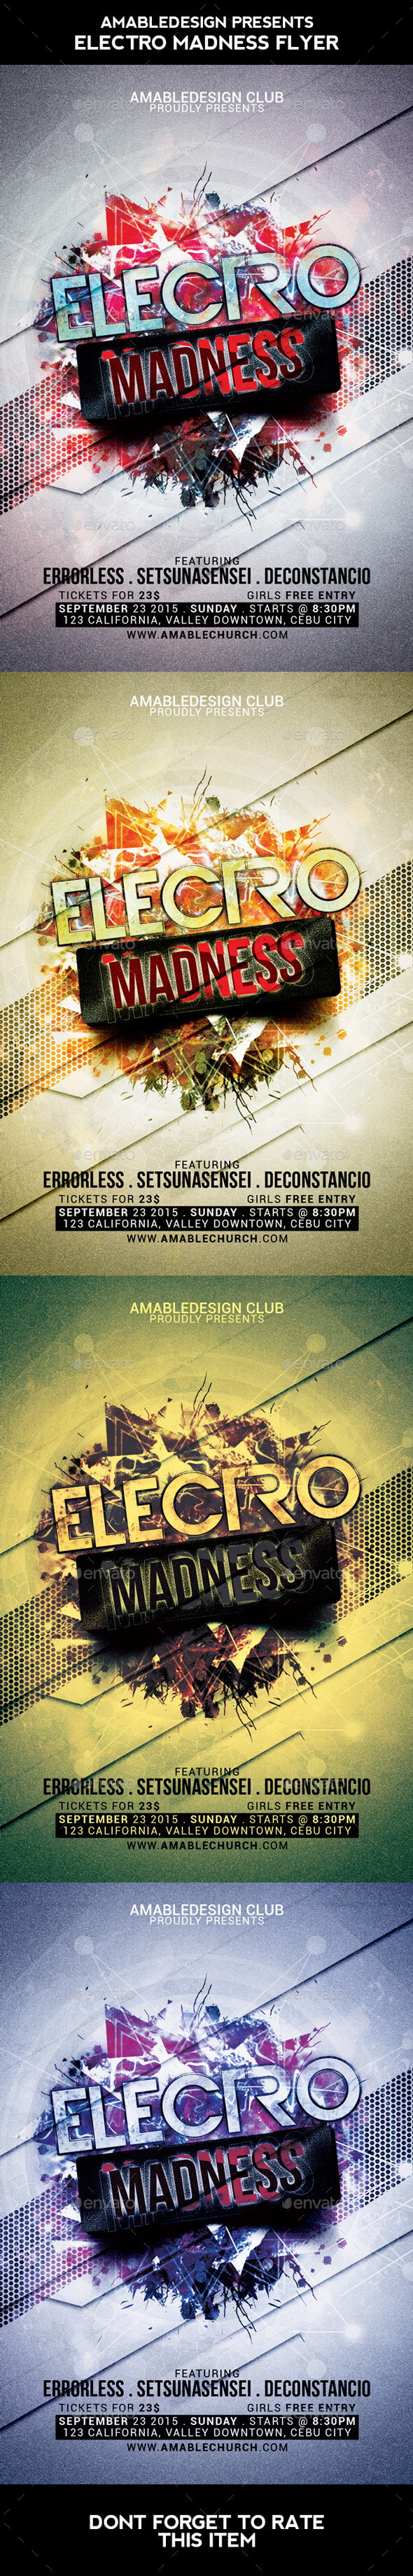 Electro Madness Flyer - Clubs & Parties Events